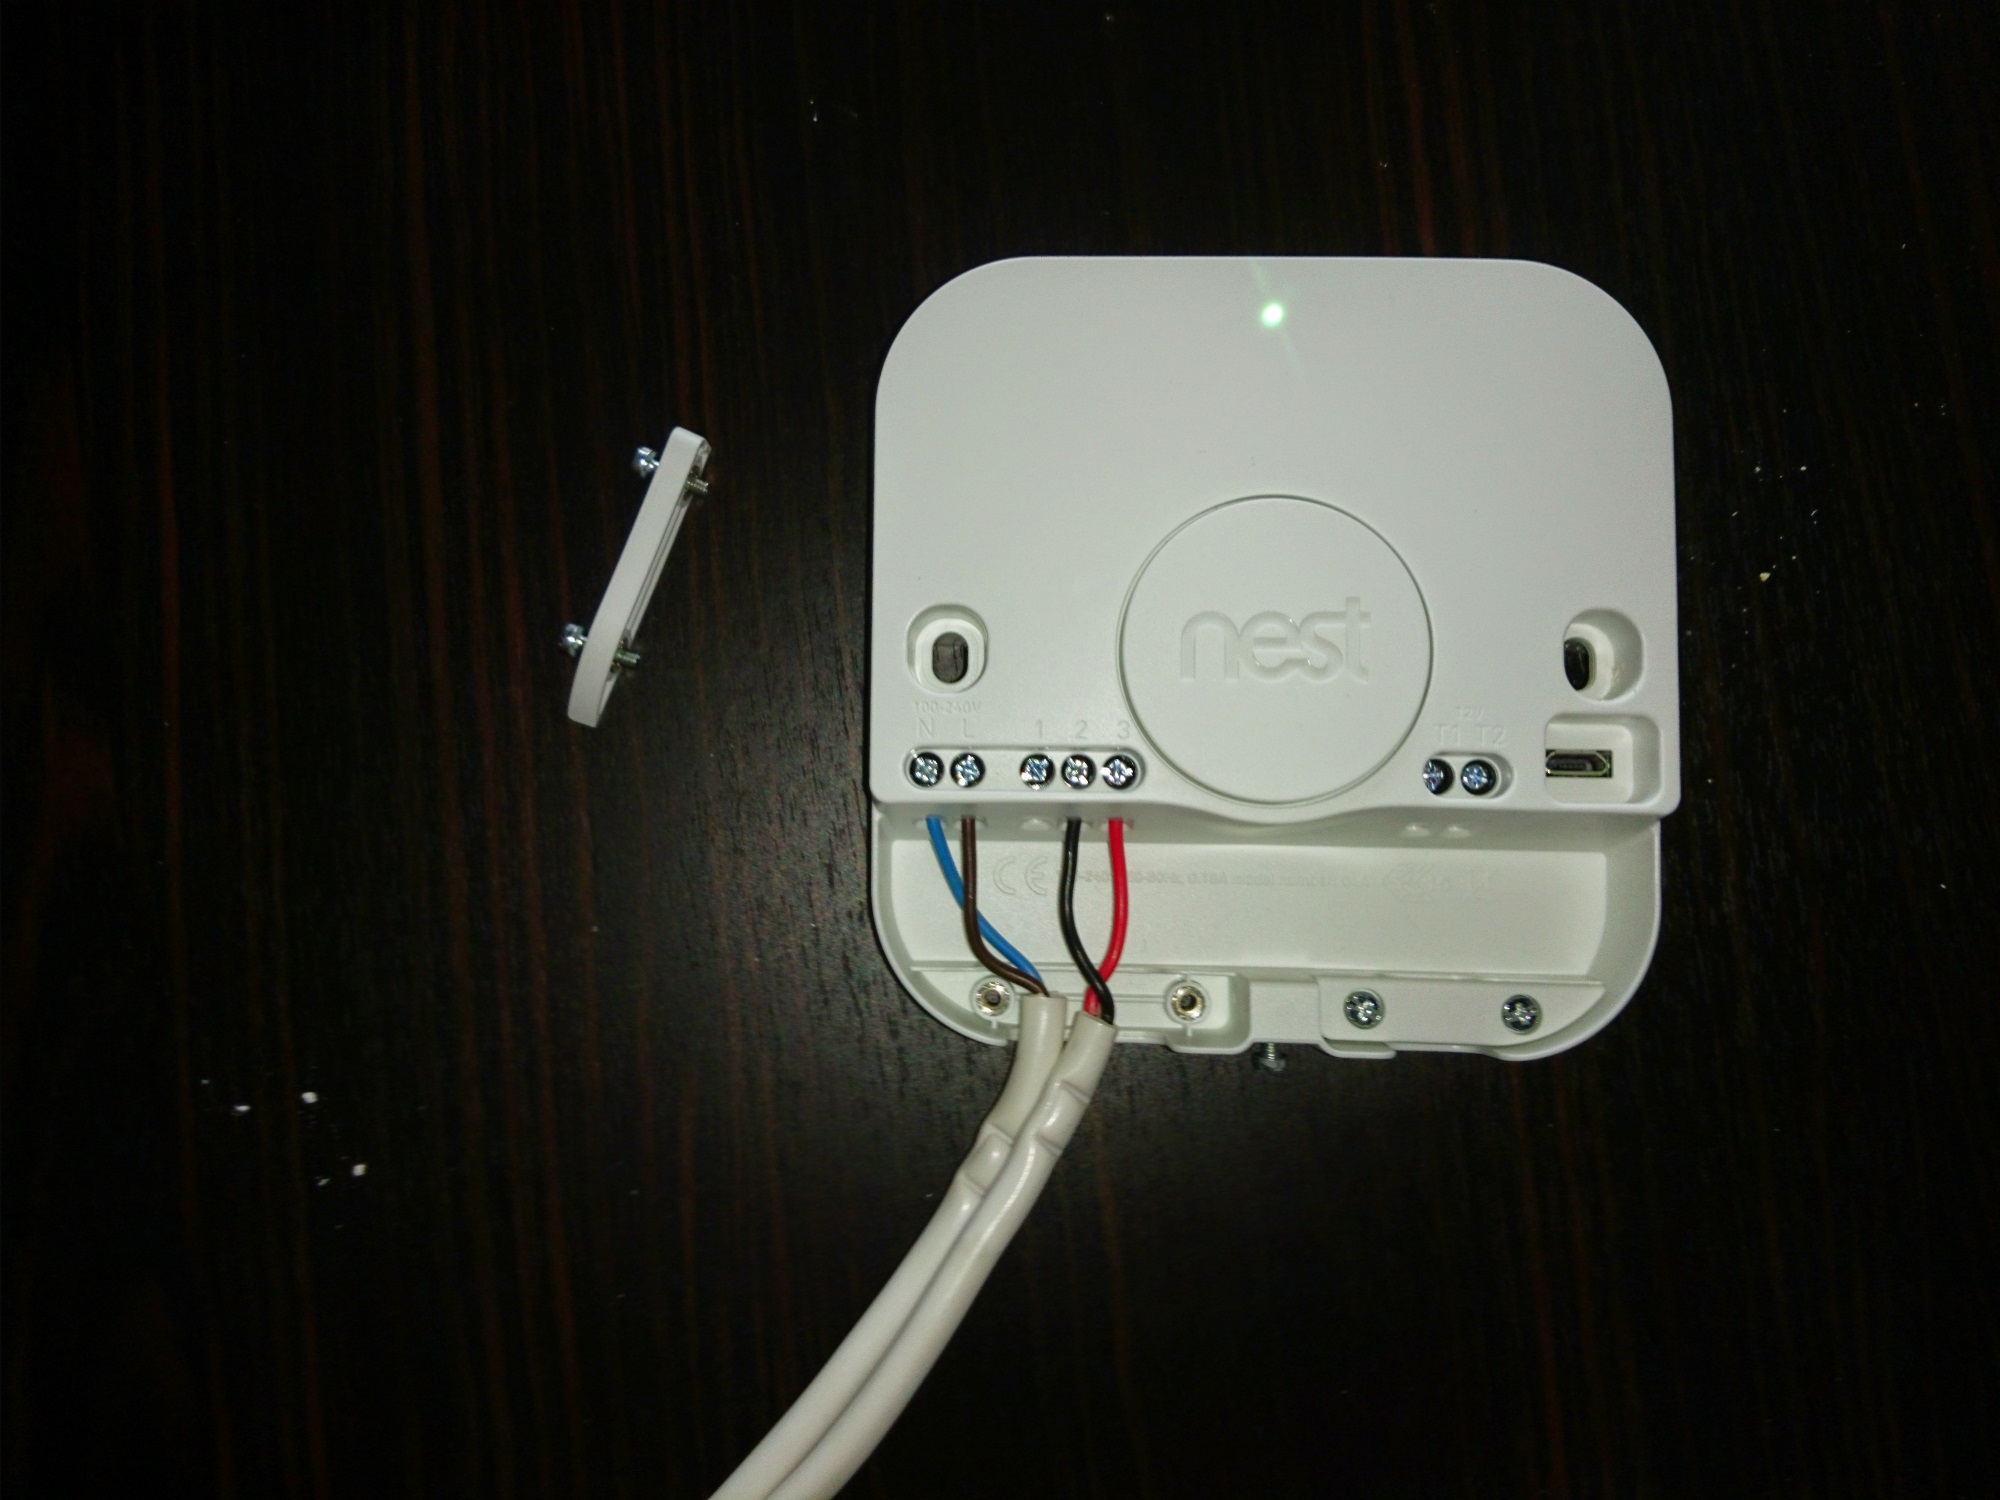 nest thermostat wiring diagram with Installation Du Thermostat Nest on Watch furthermore Home Air Conditioning Thermostat Wiring additionally Wiring Diagram For A Thermostat together with Nest Thermostat Installation together with What You Need Know About Installing Your Nest Thermostat.